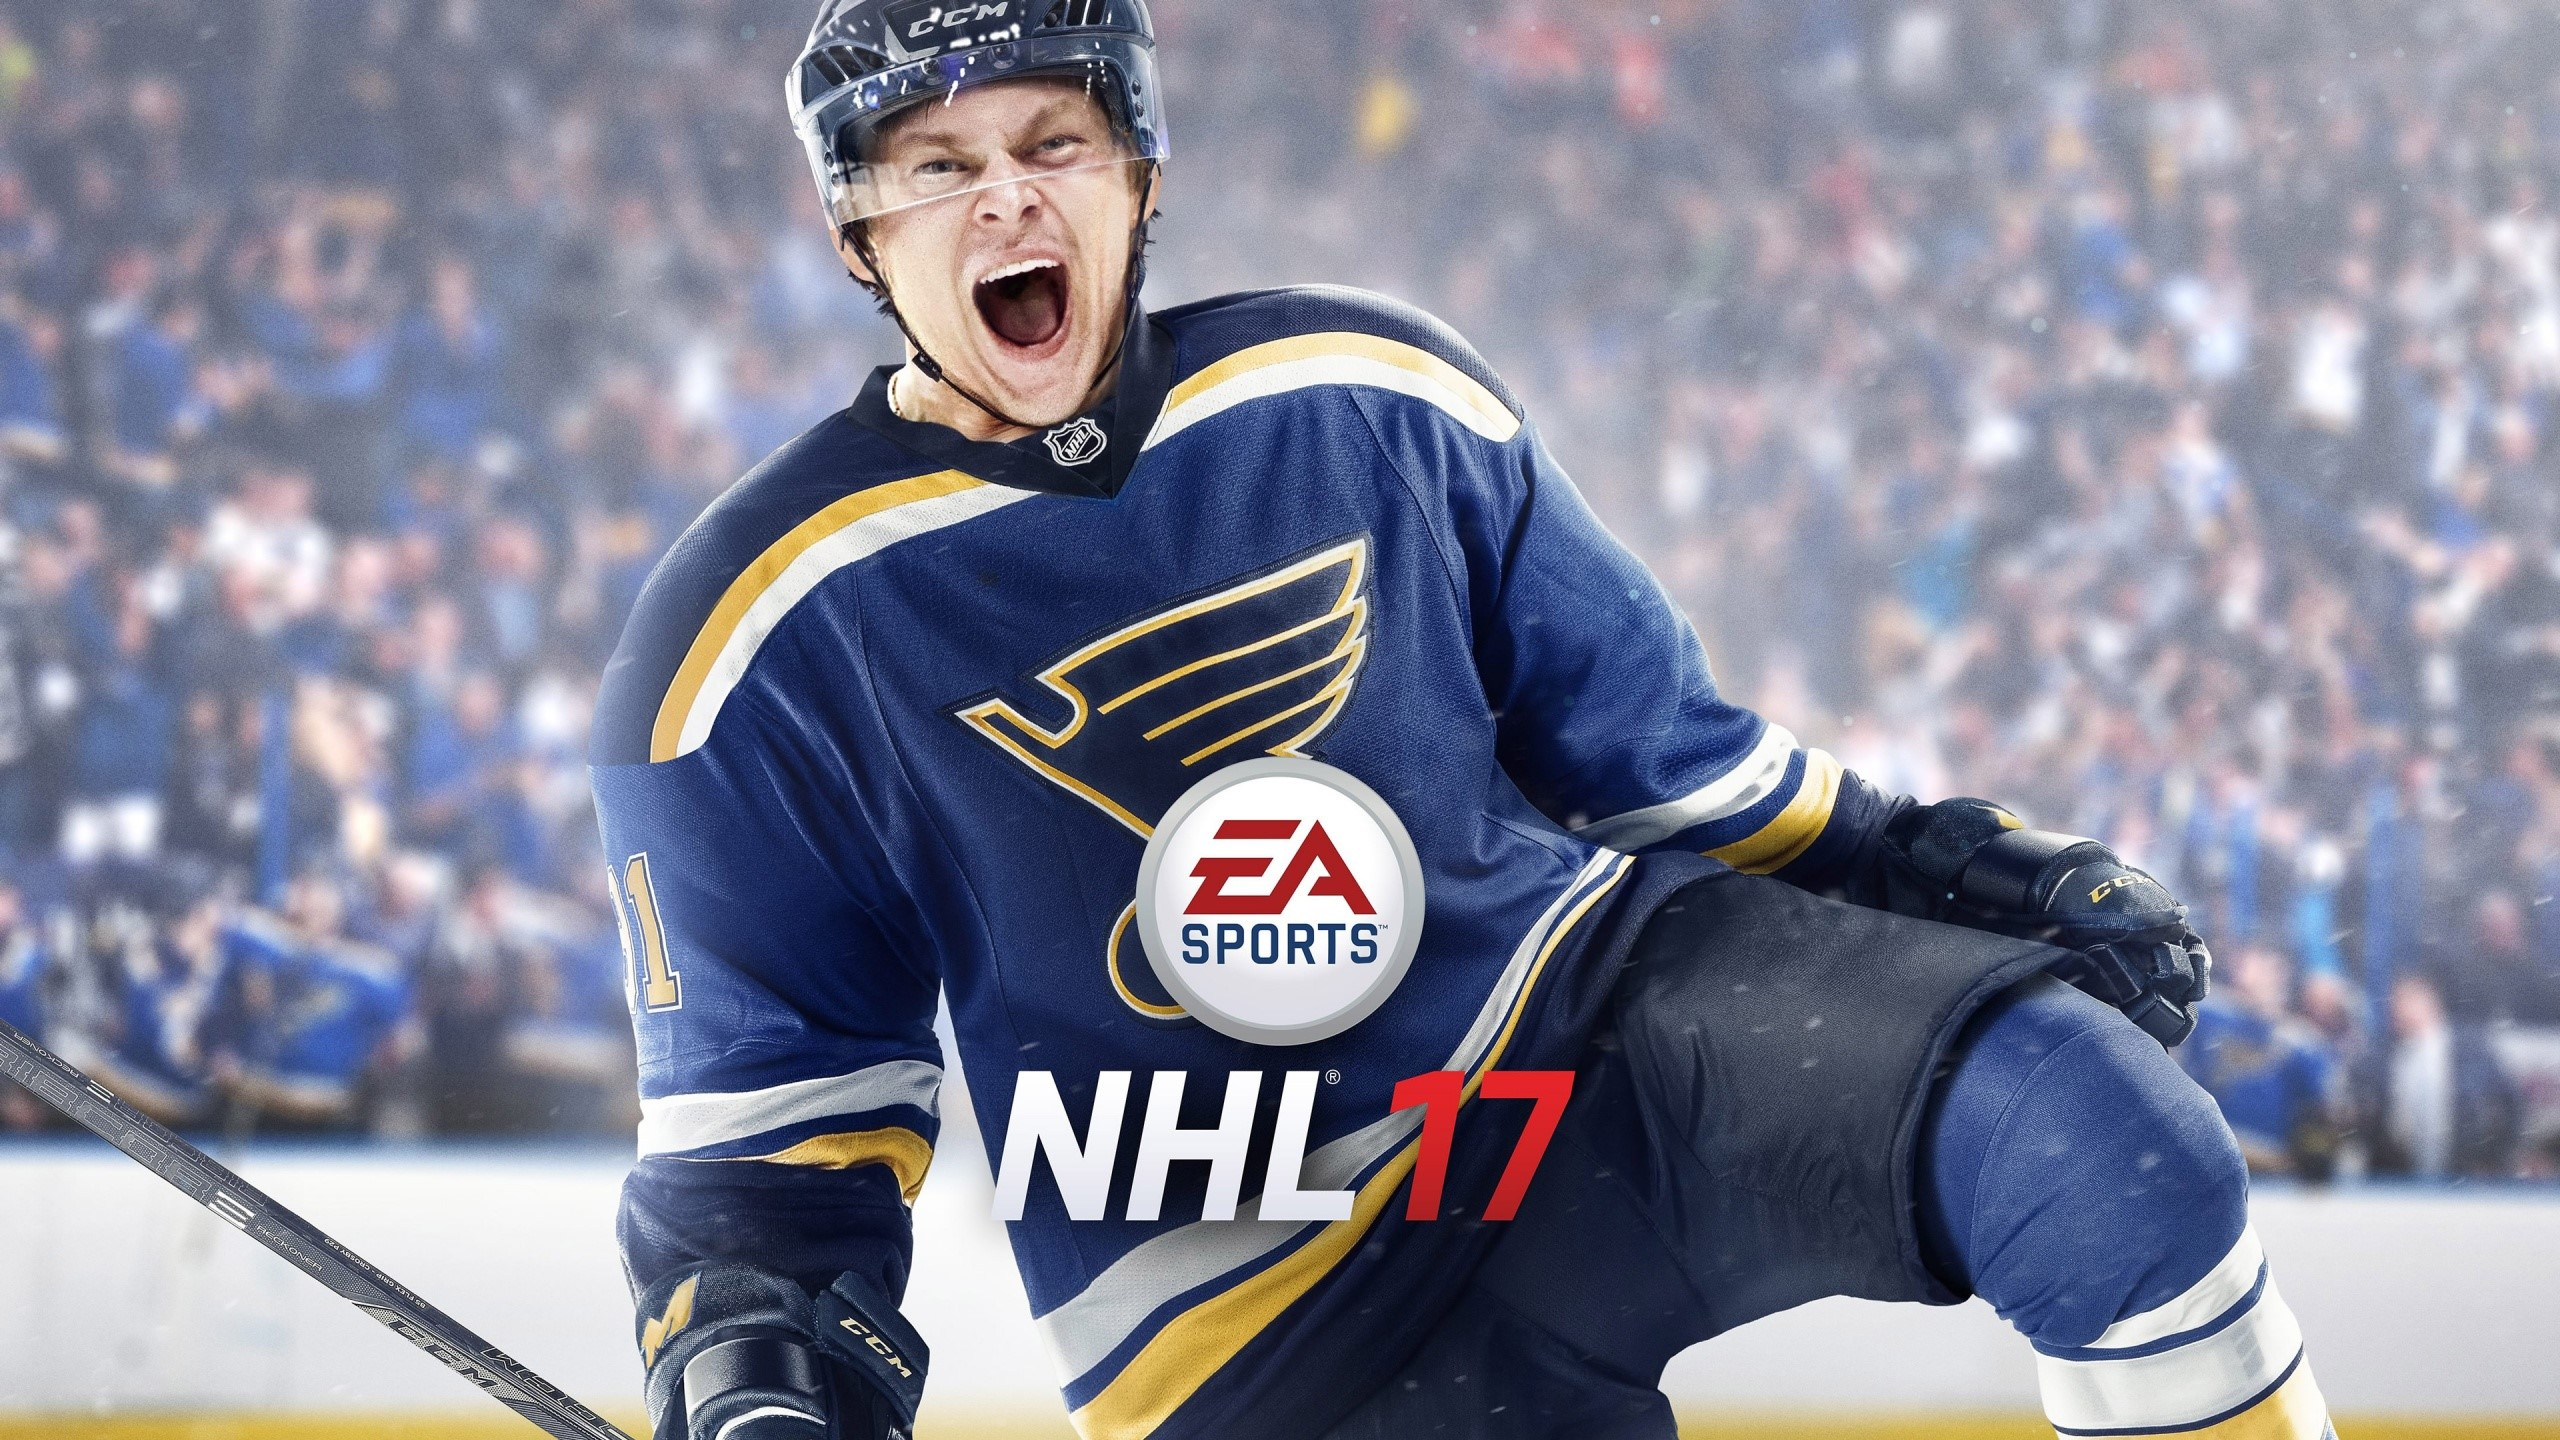 Wallpaper Juego NHL 17 de EA sports